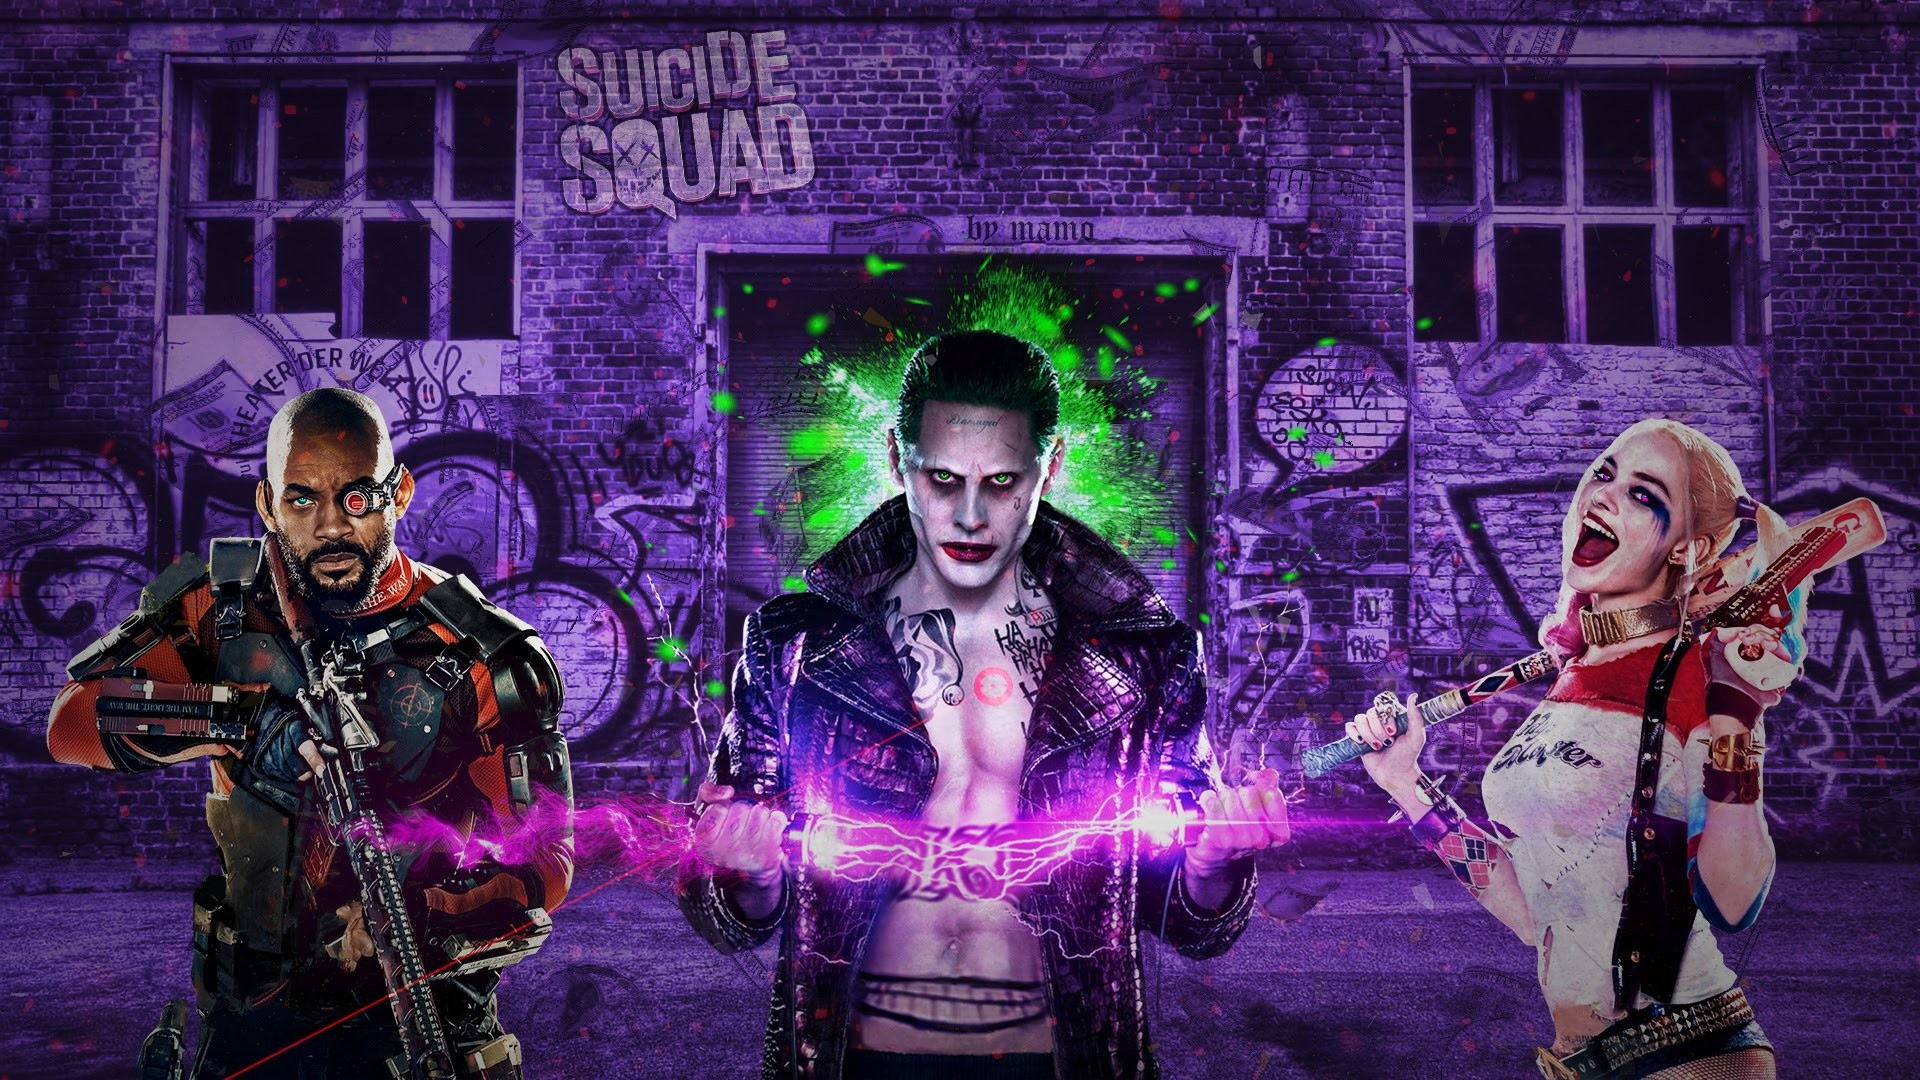 Harley Quinn Suicide Squad Wallpapers 72 Images